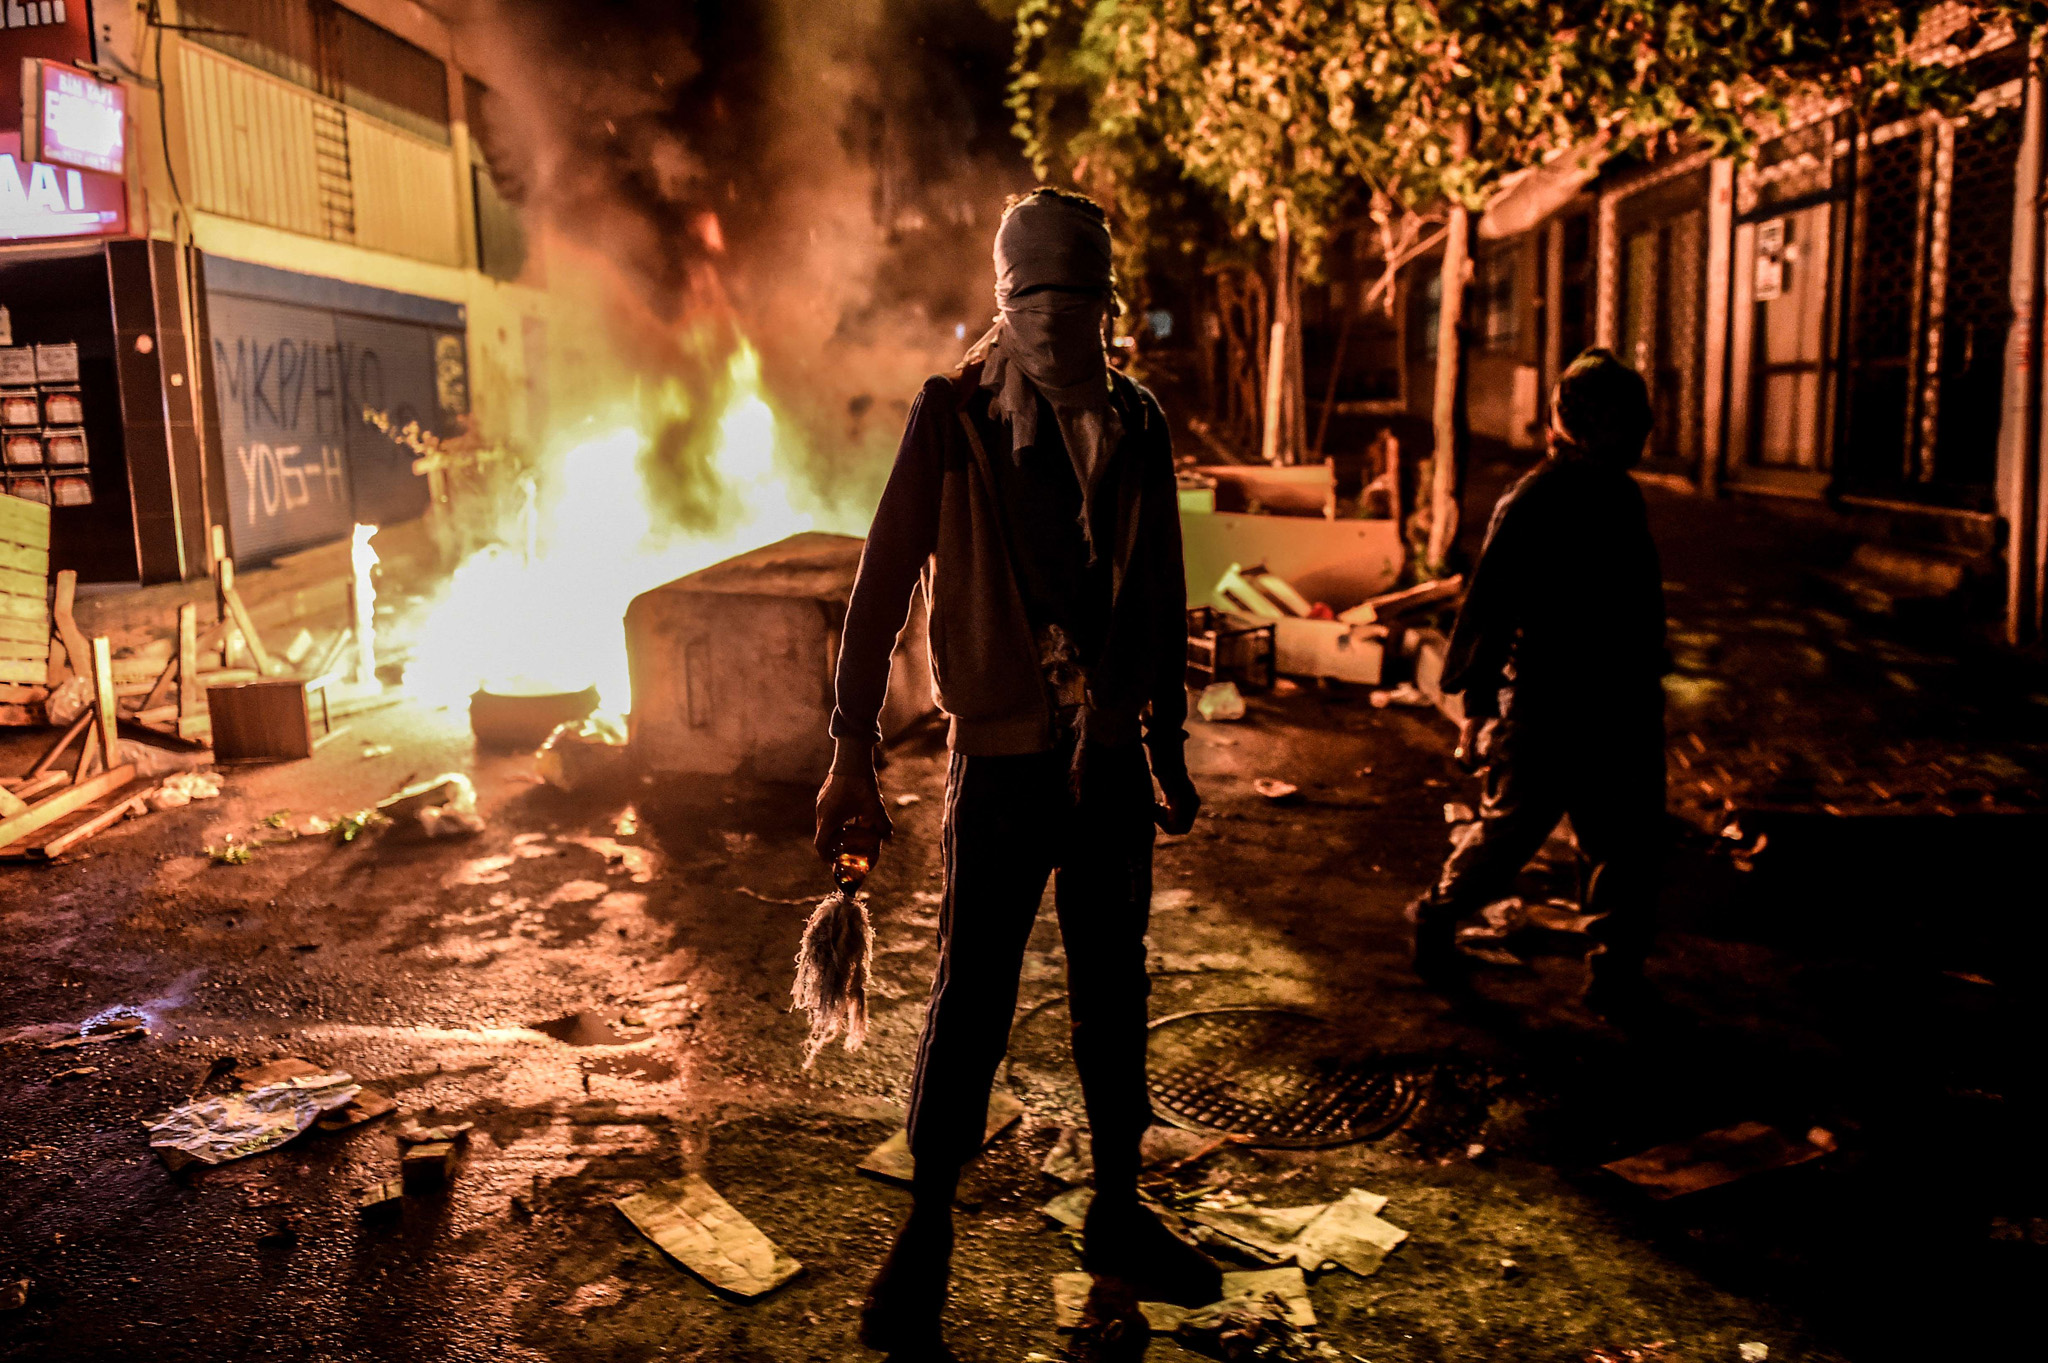 masked kurdish militant holds a molotov cocktails in front of a burning barricade during clashes with Turkish police